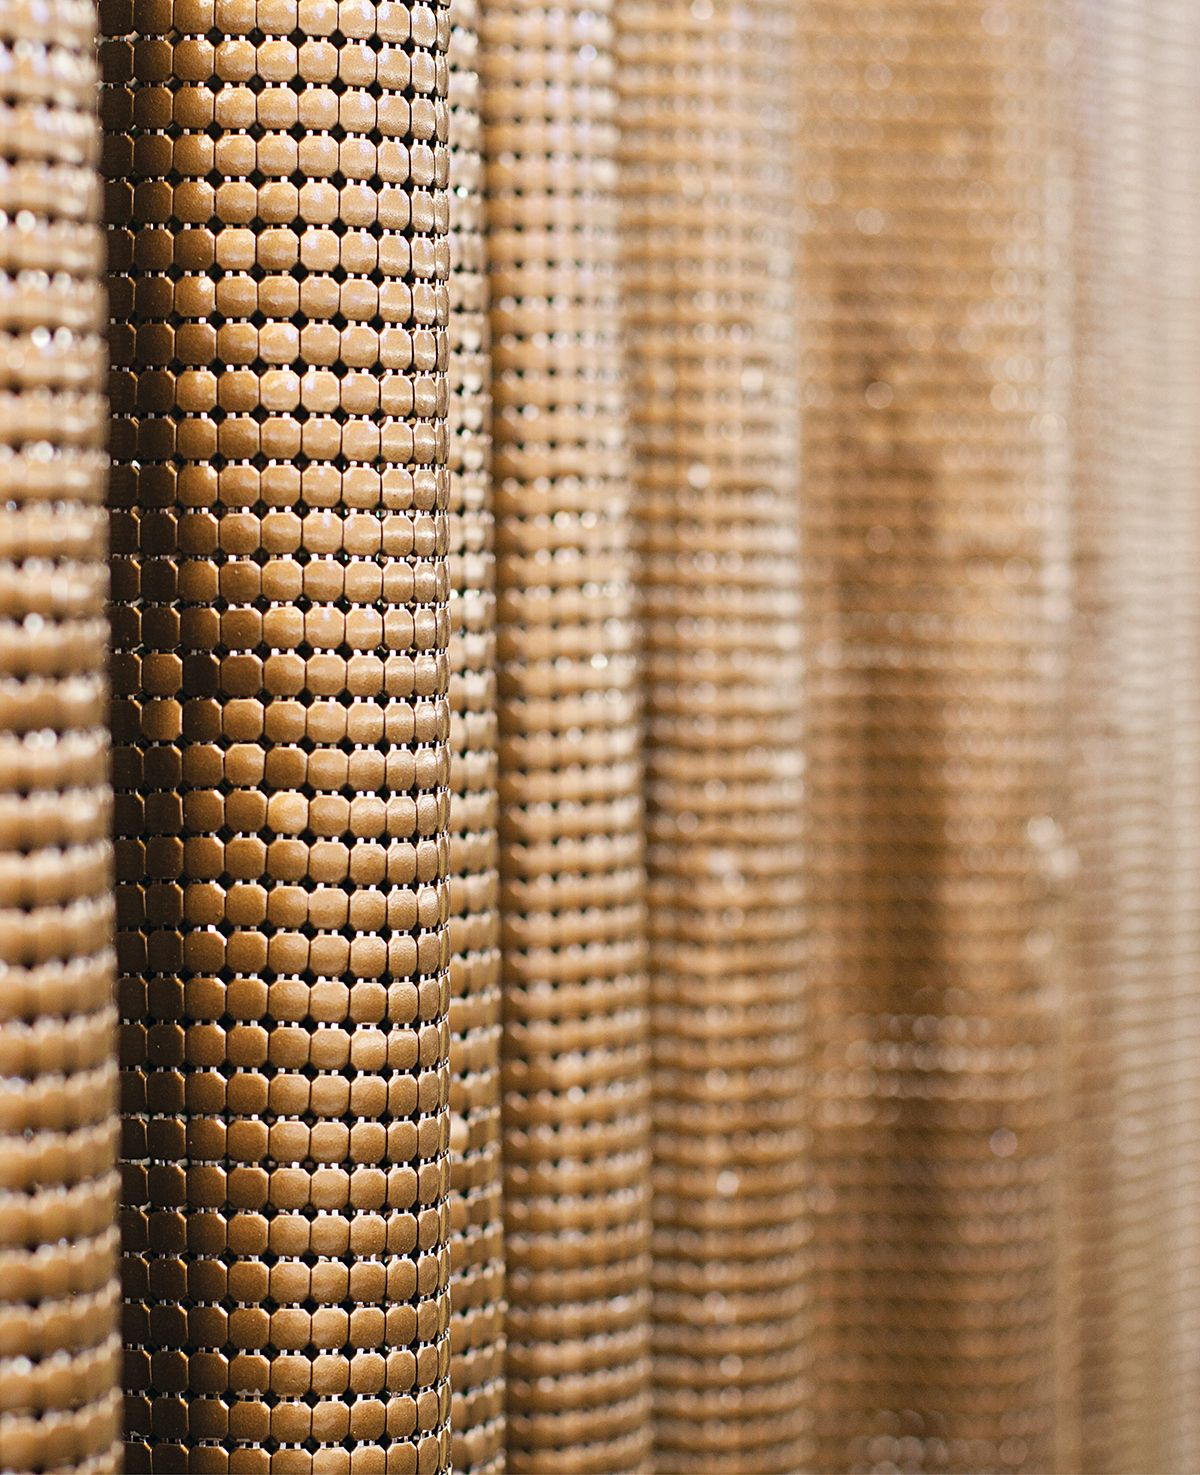 Chain Gang Wall Covering Metal Curtain Colorful Curtains